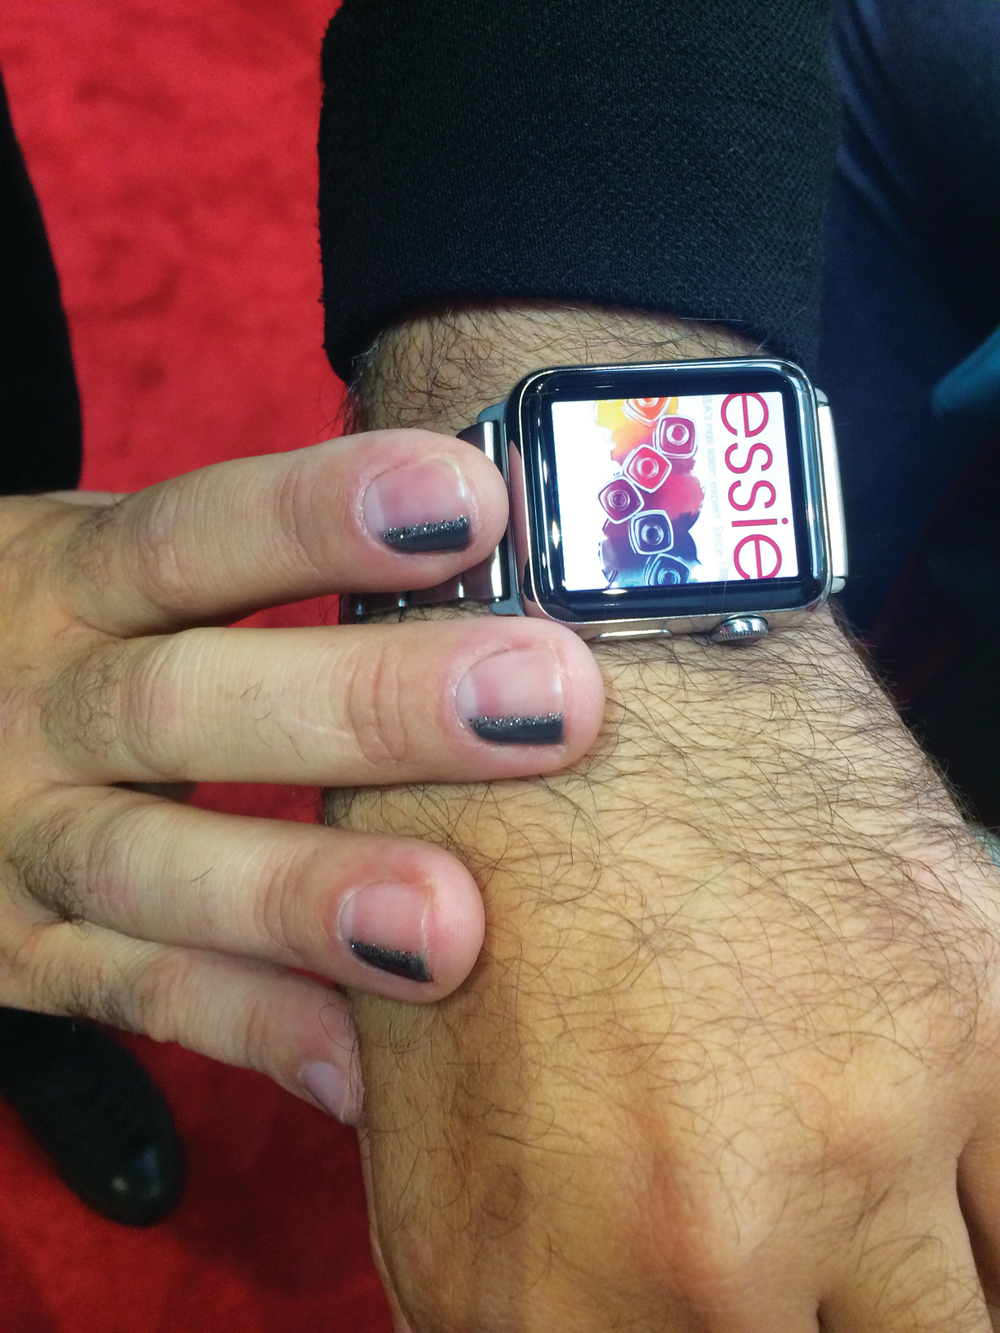 <p>Gino Trunzo's Essie manicure goes perfectly with his Apple Watch display.</p>